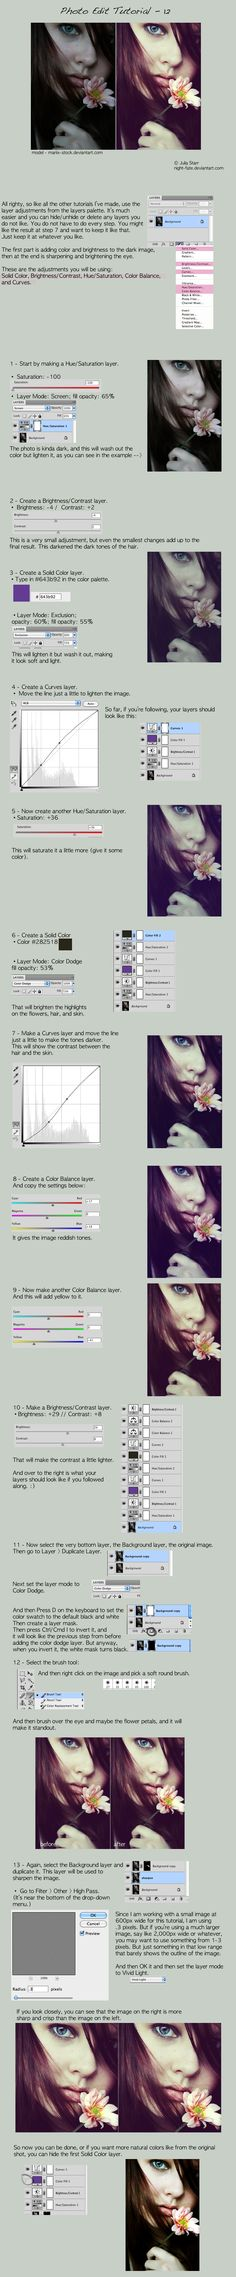 photo edit tutorial - 12 by `night-fate on deviantART